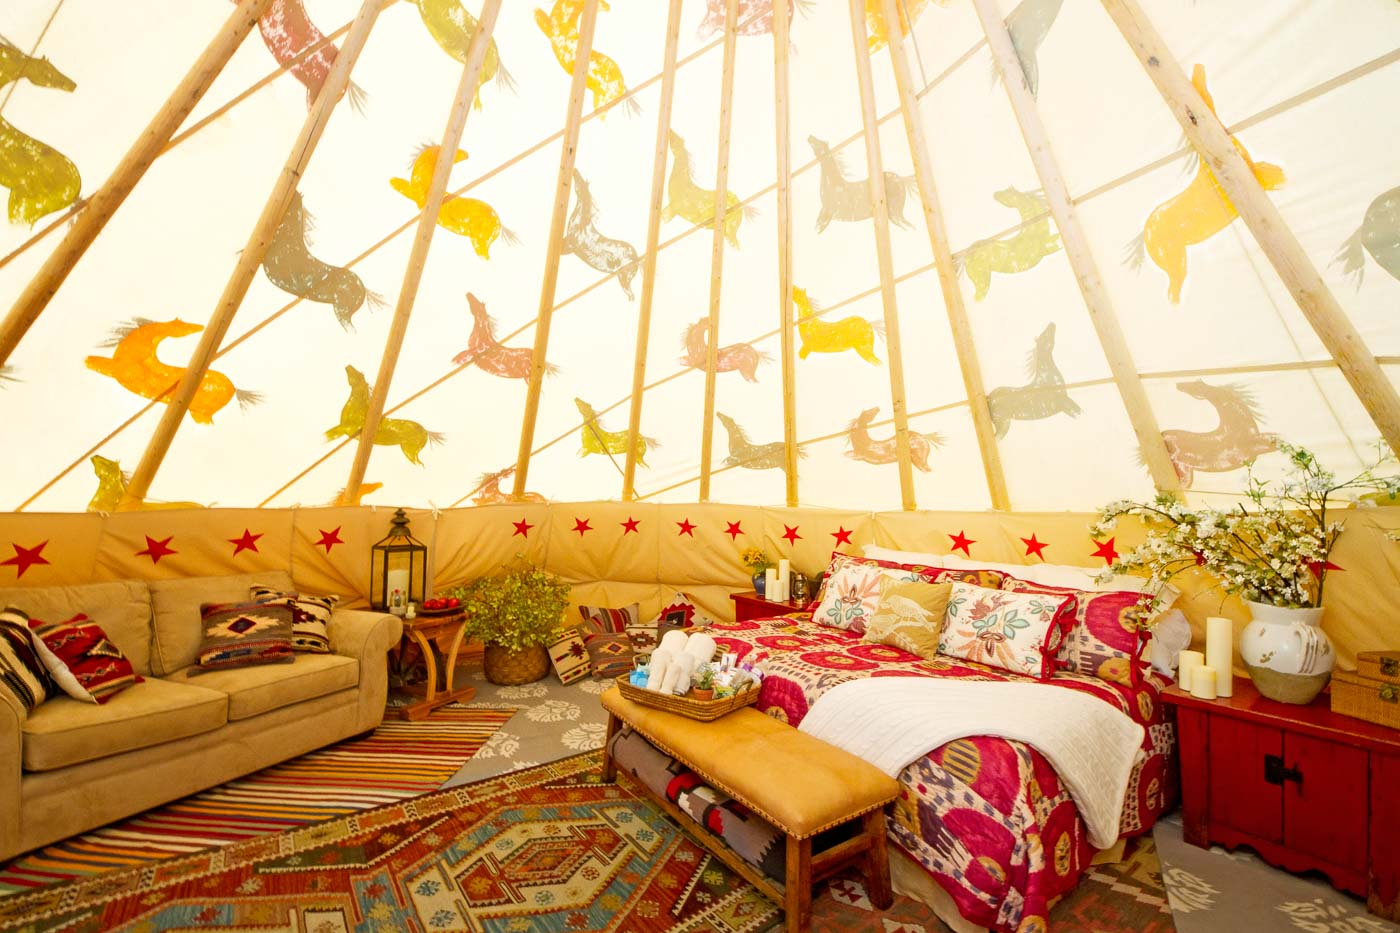 Tipis for the Modern Day Stay | Glamping.com